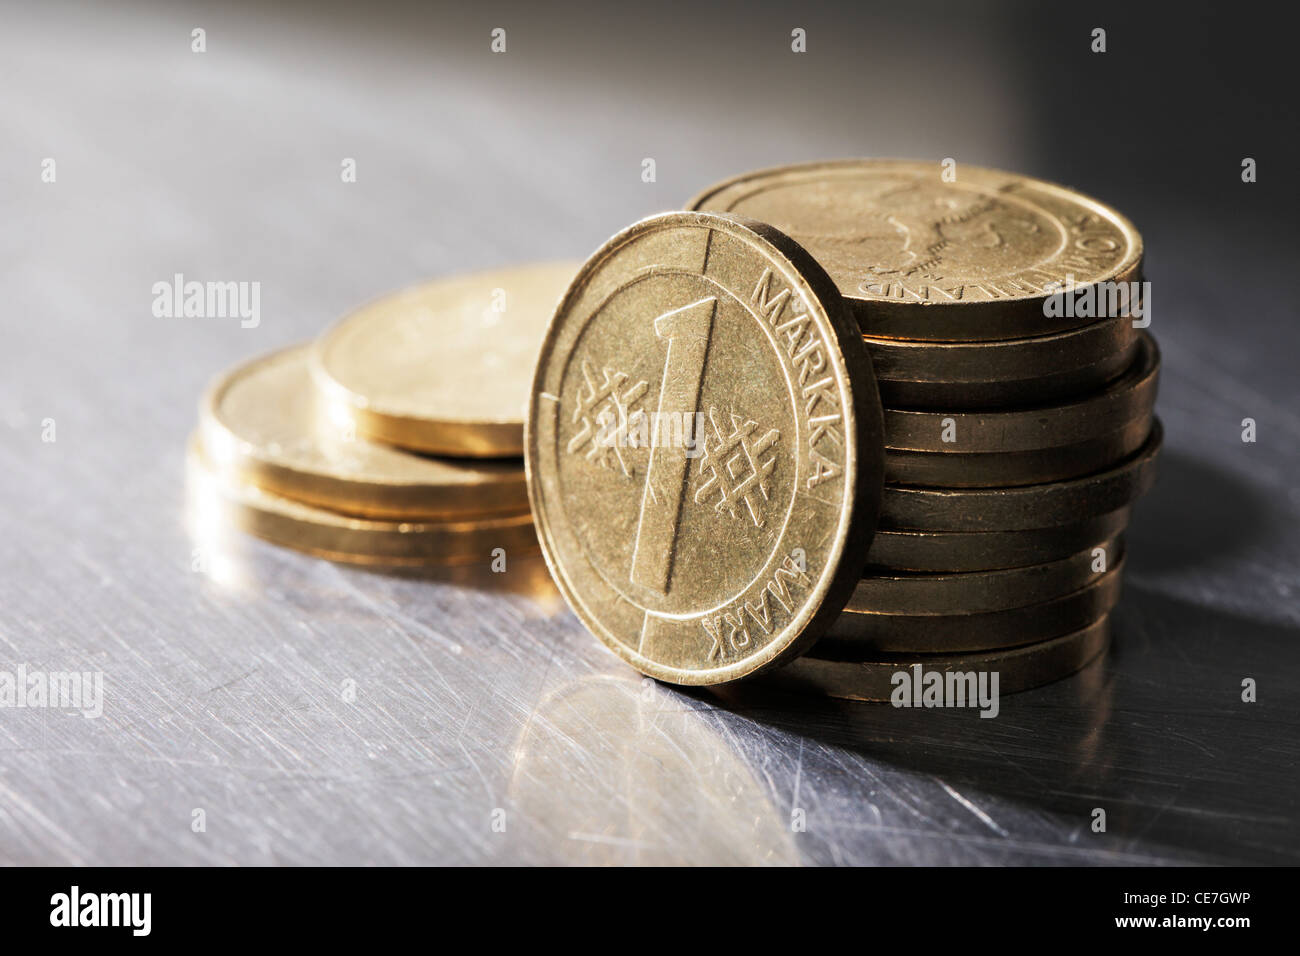 The Finnish markka was the currency of Finland from 1860 until 28 February 2002, when it ceased to be legal tender. - Stock Image